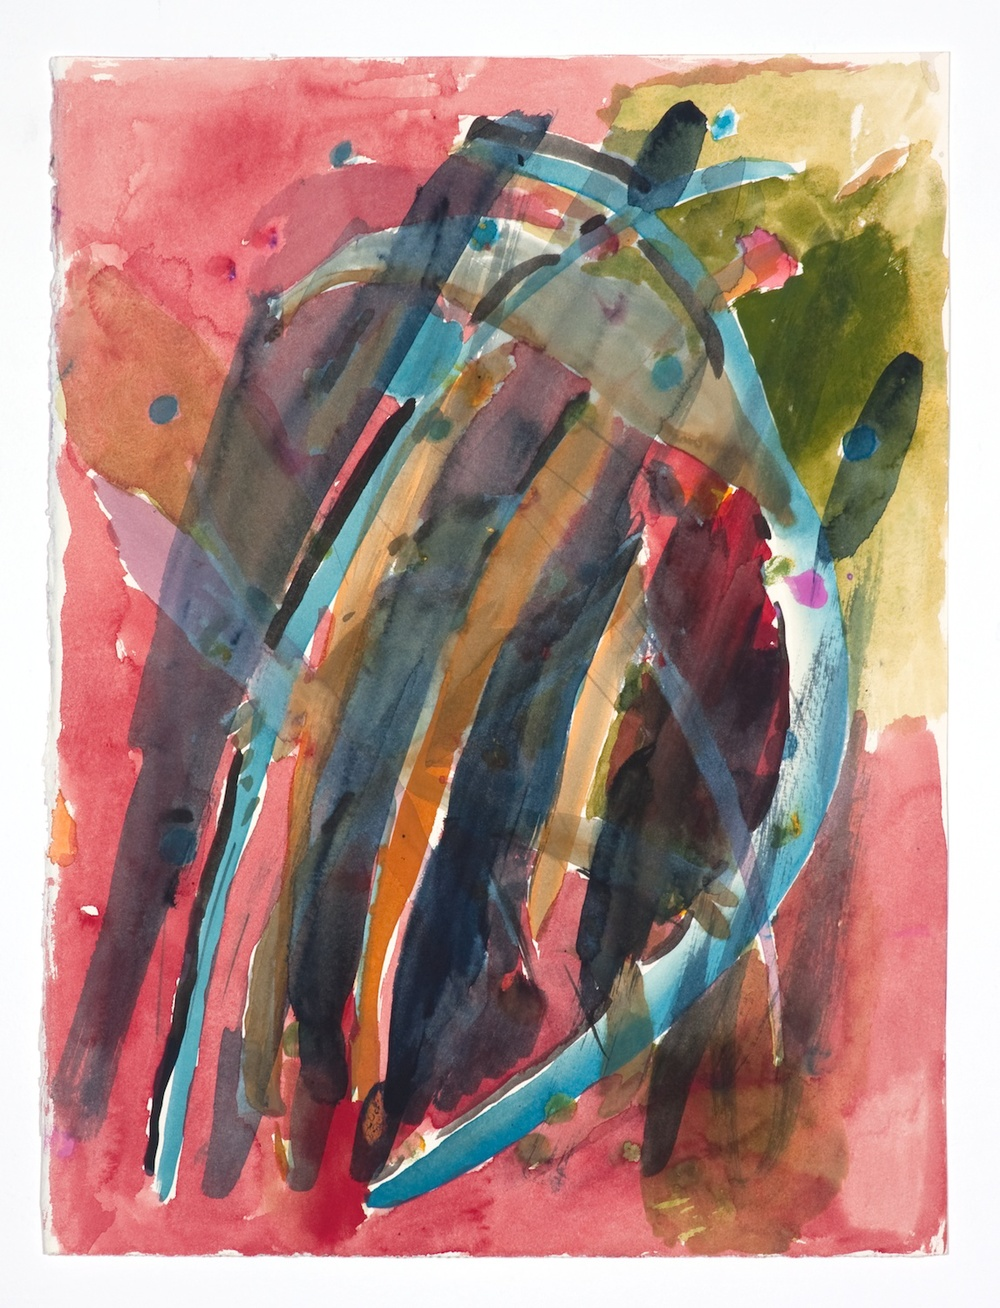 "Jon Pestoni Untitled 2009 Gouache on paper 15"" x 11 3/4"" JP076"